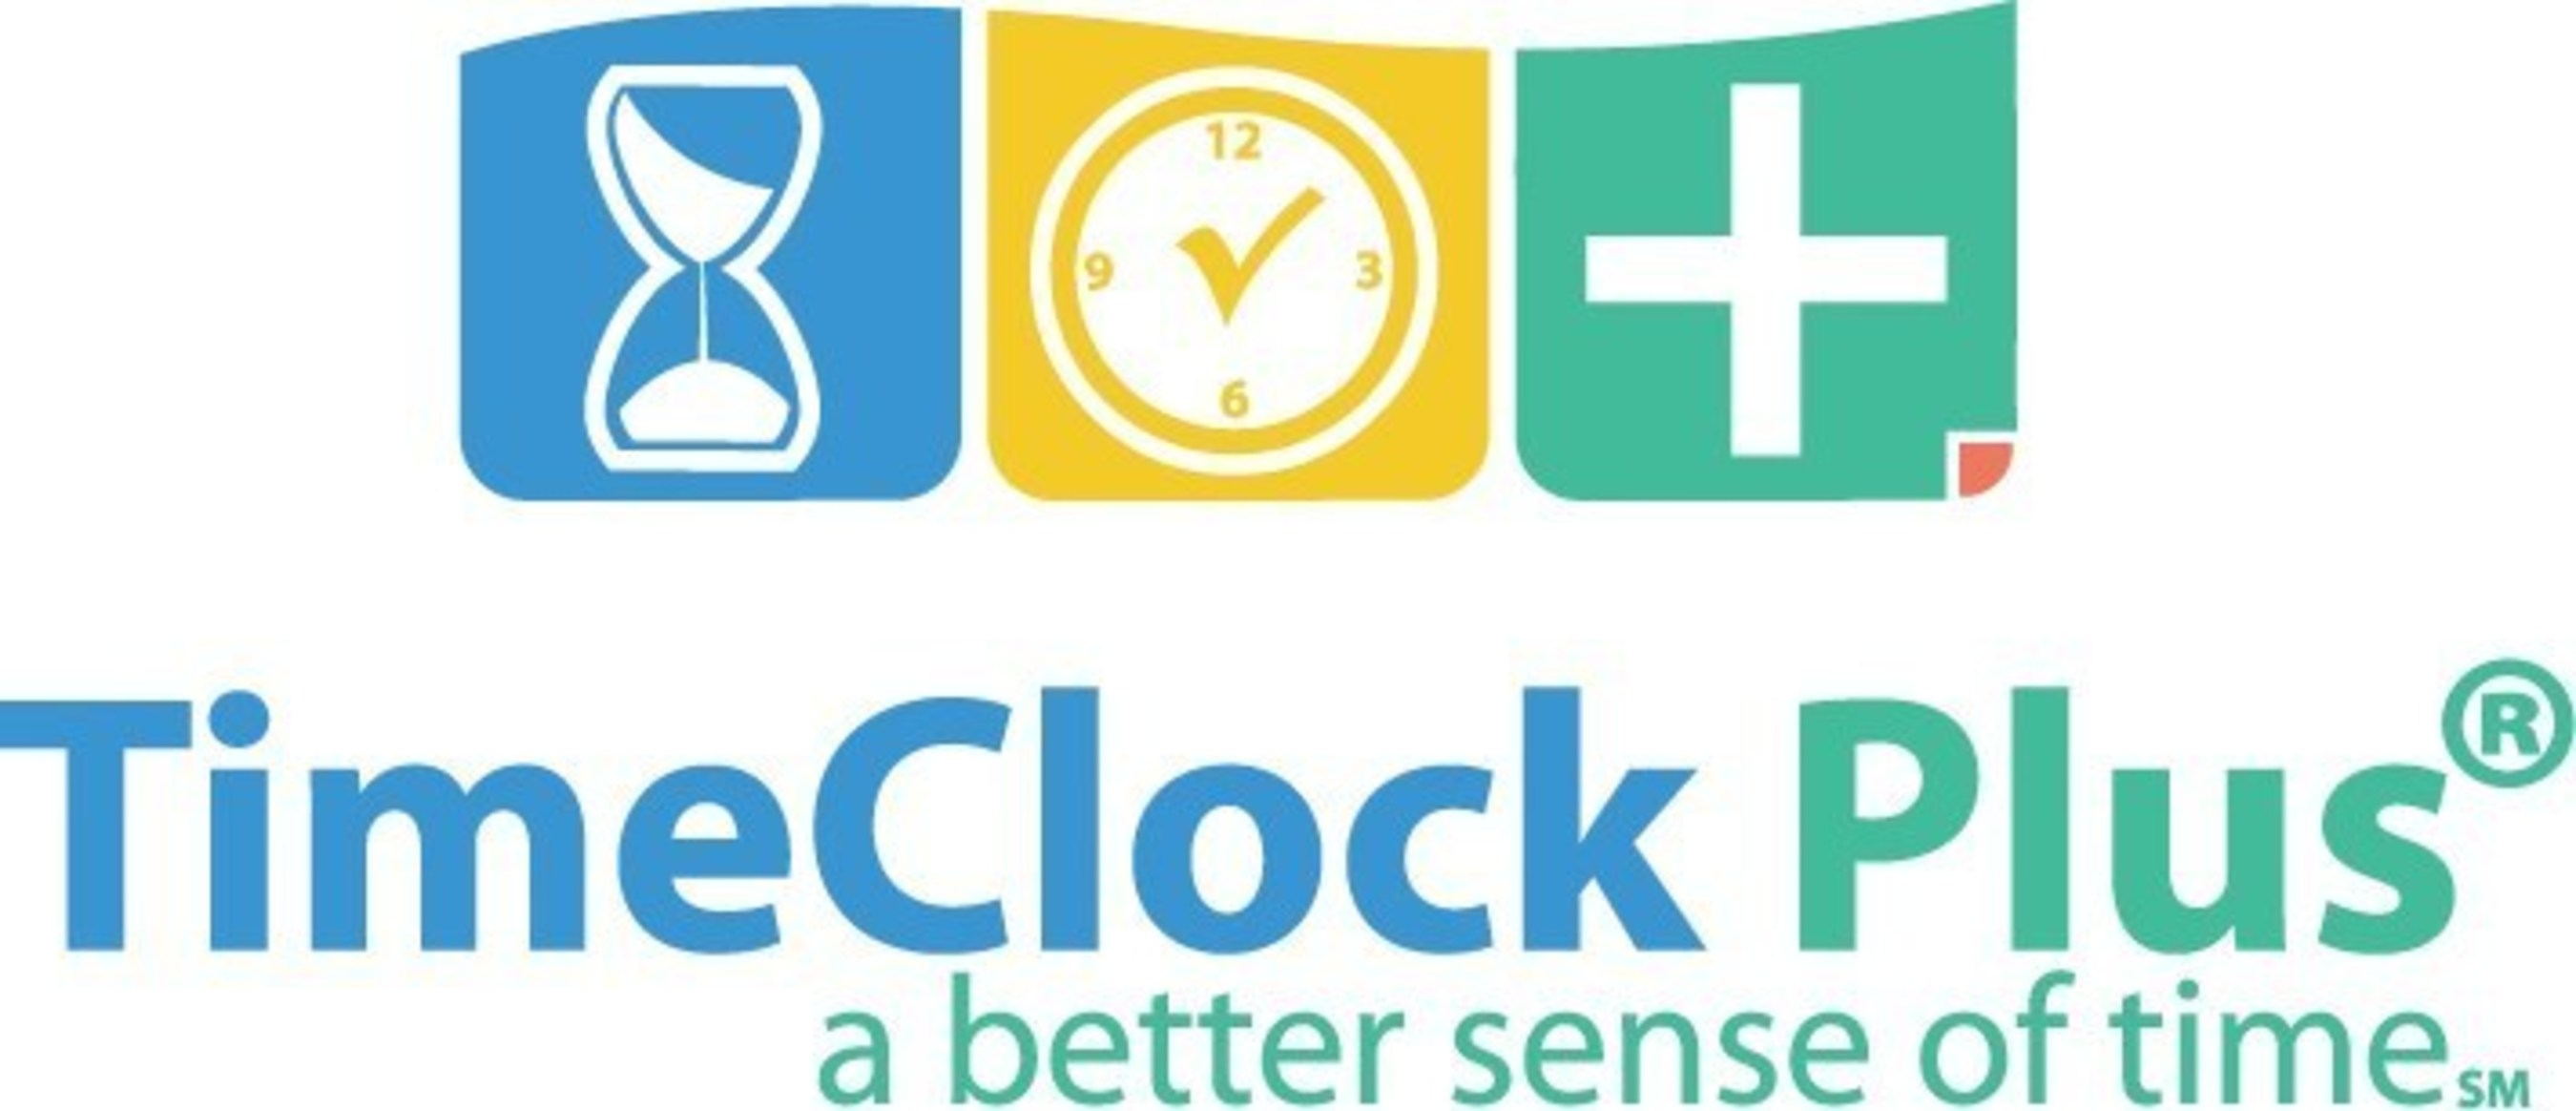 TimeClock Plus Announces Strategic Partnership With Titan II Precast Management Software